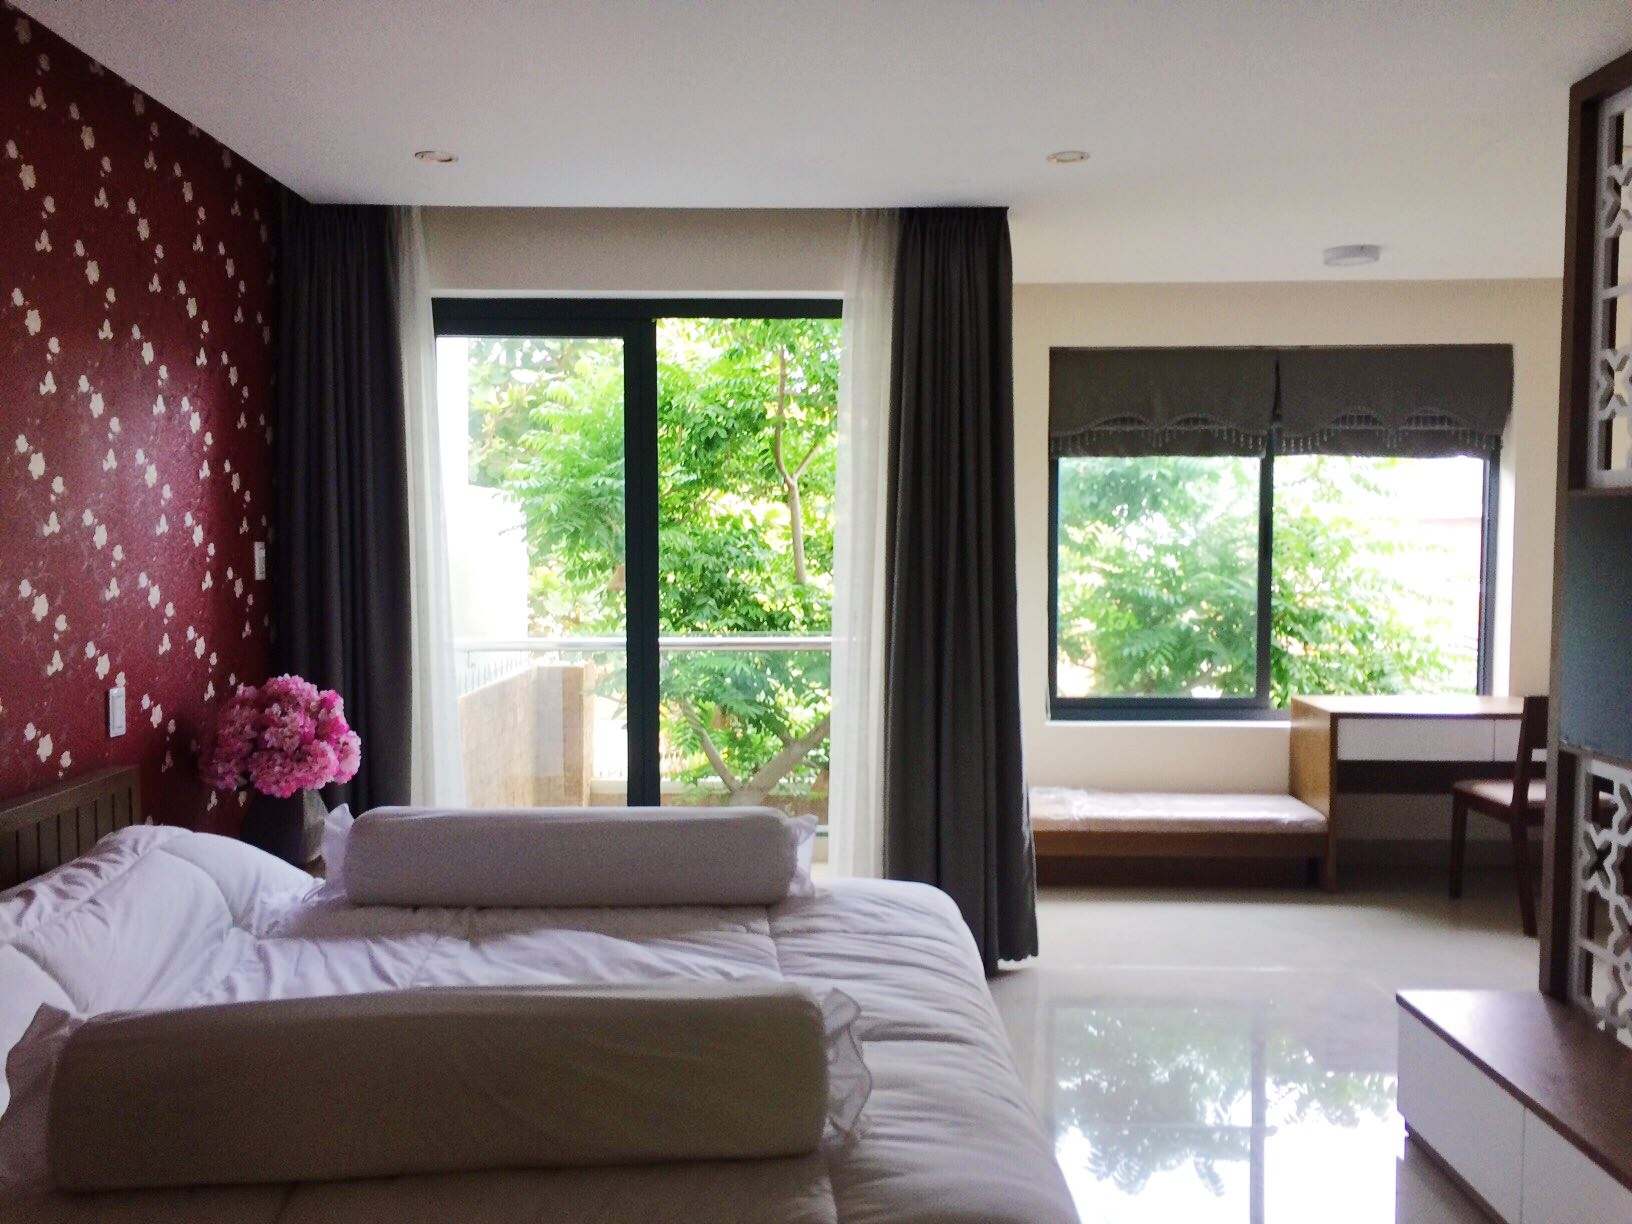 The apartment 2 bedrooms, 100m2 in Che Lan Vien area